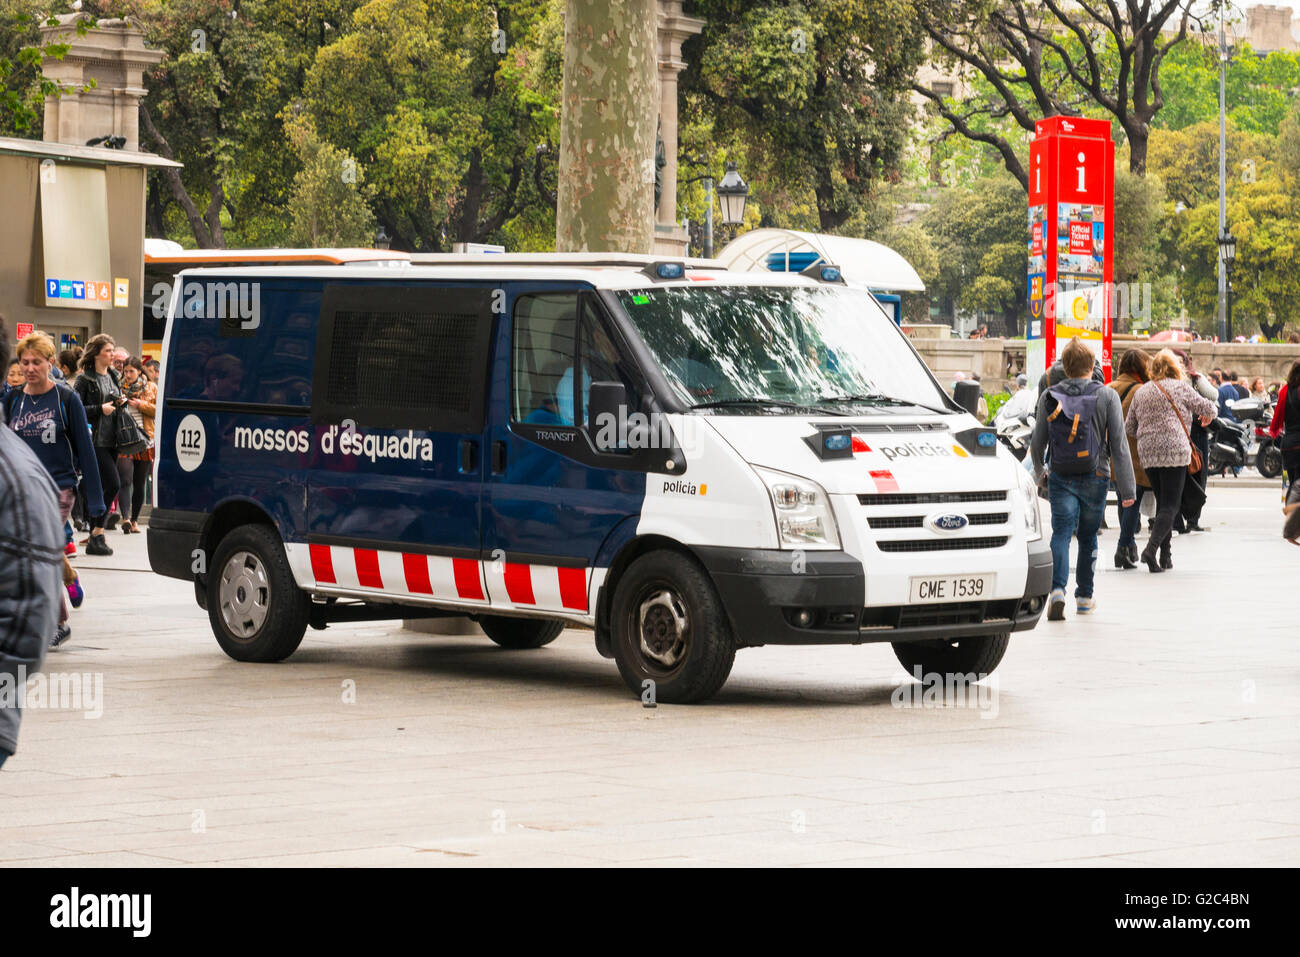 Spain Catalonia Barcelona police Ford van mossos d'esquadra policia call 112 emergeacies emergency number Stock Photo